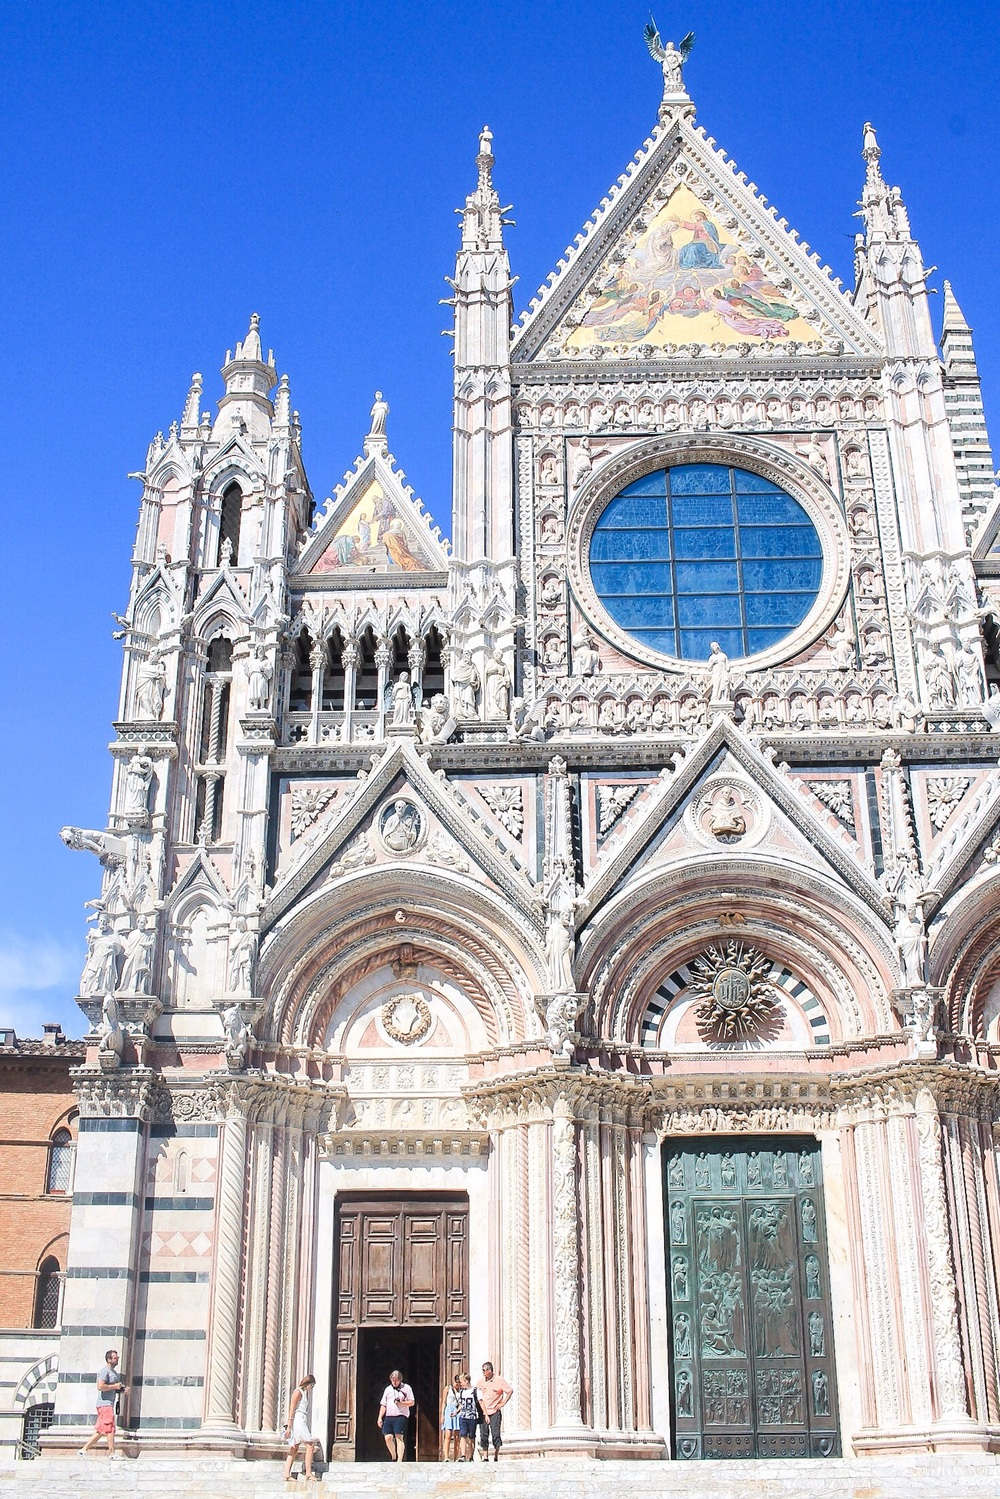 The ever so beautiful Duomo Di Siena